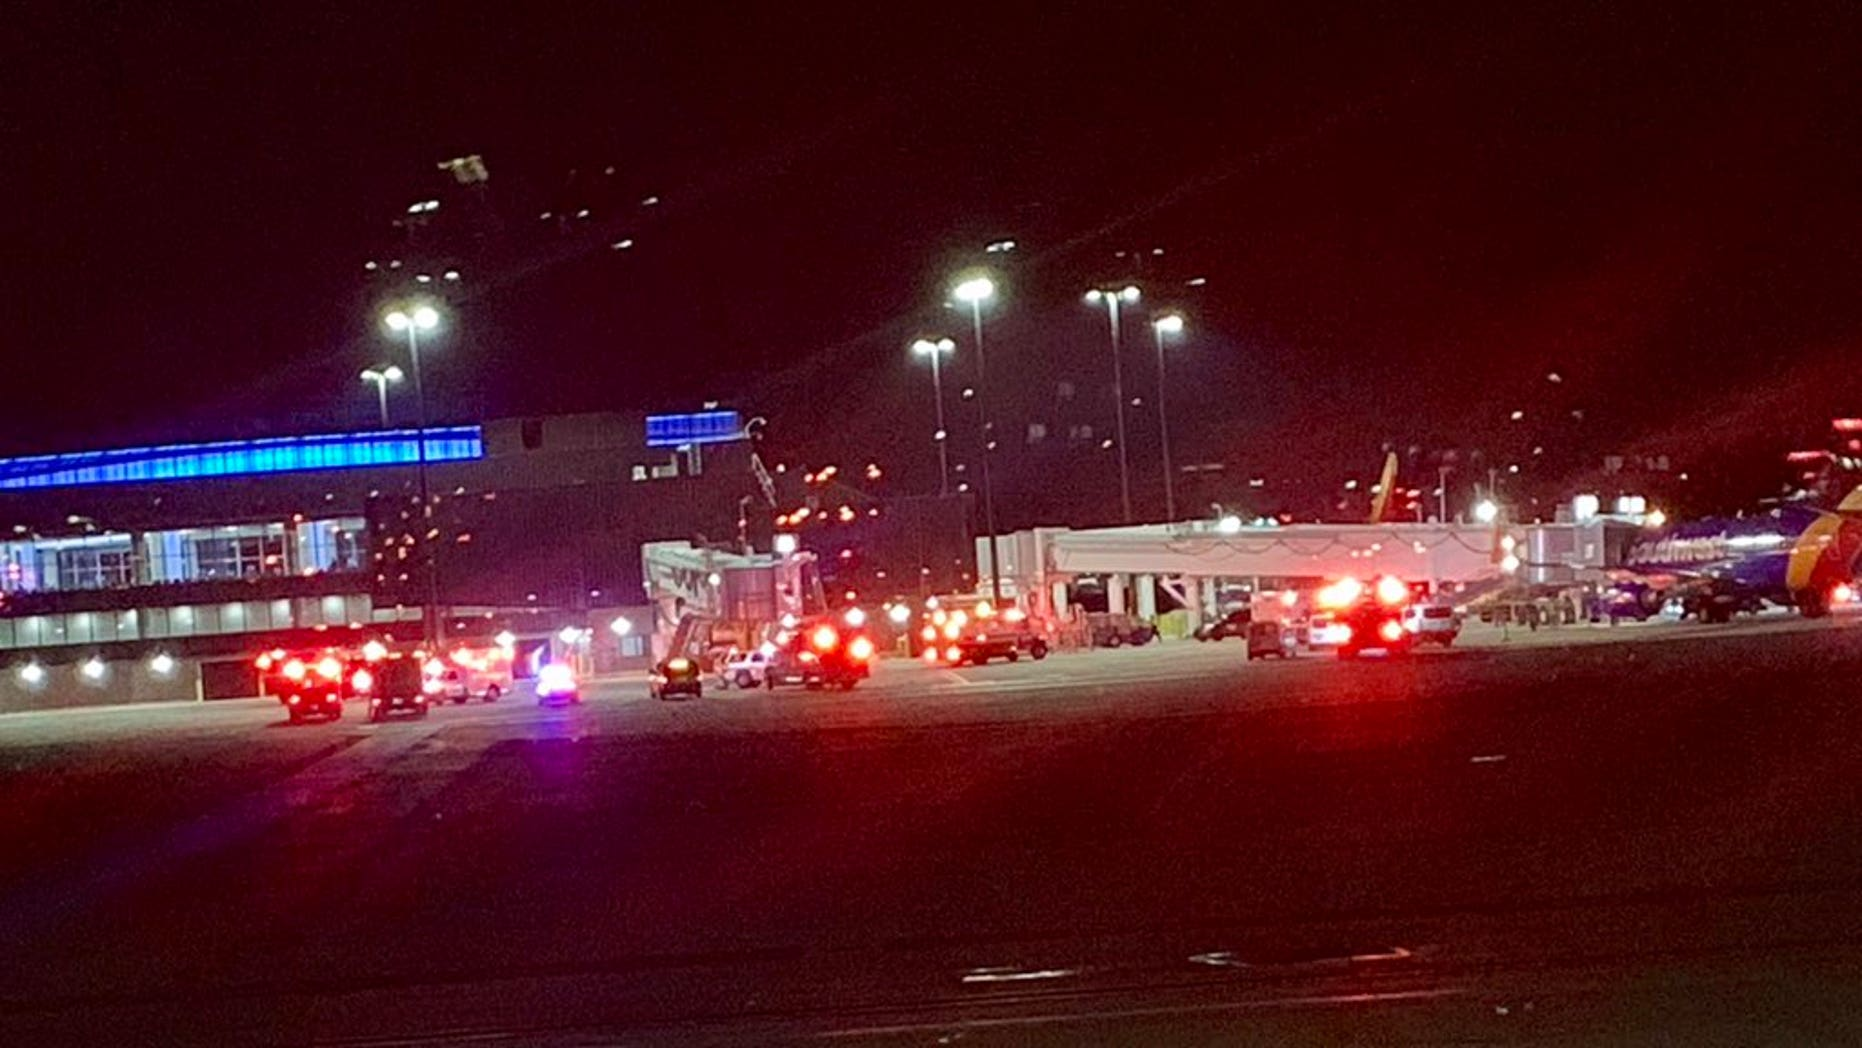 """Several people were injured Saturday when a """"partial equipment failure"""" that involved a """"jet bridge"""" occurred at an airport in Maryland, the airport confirmed."""